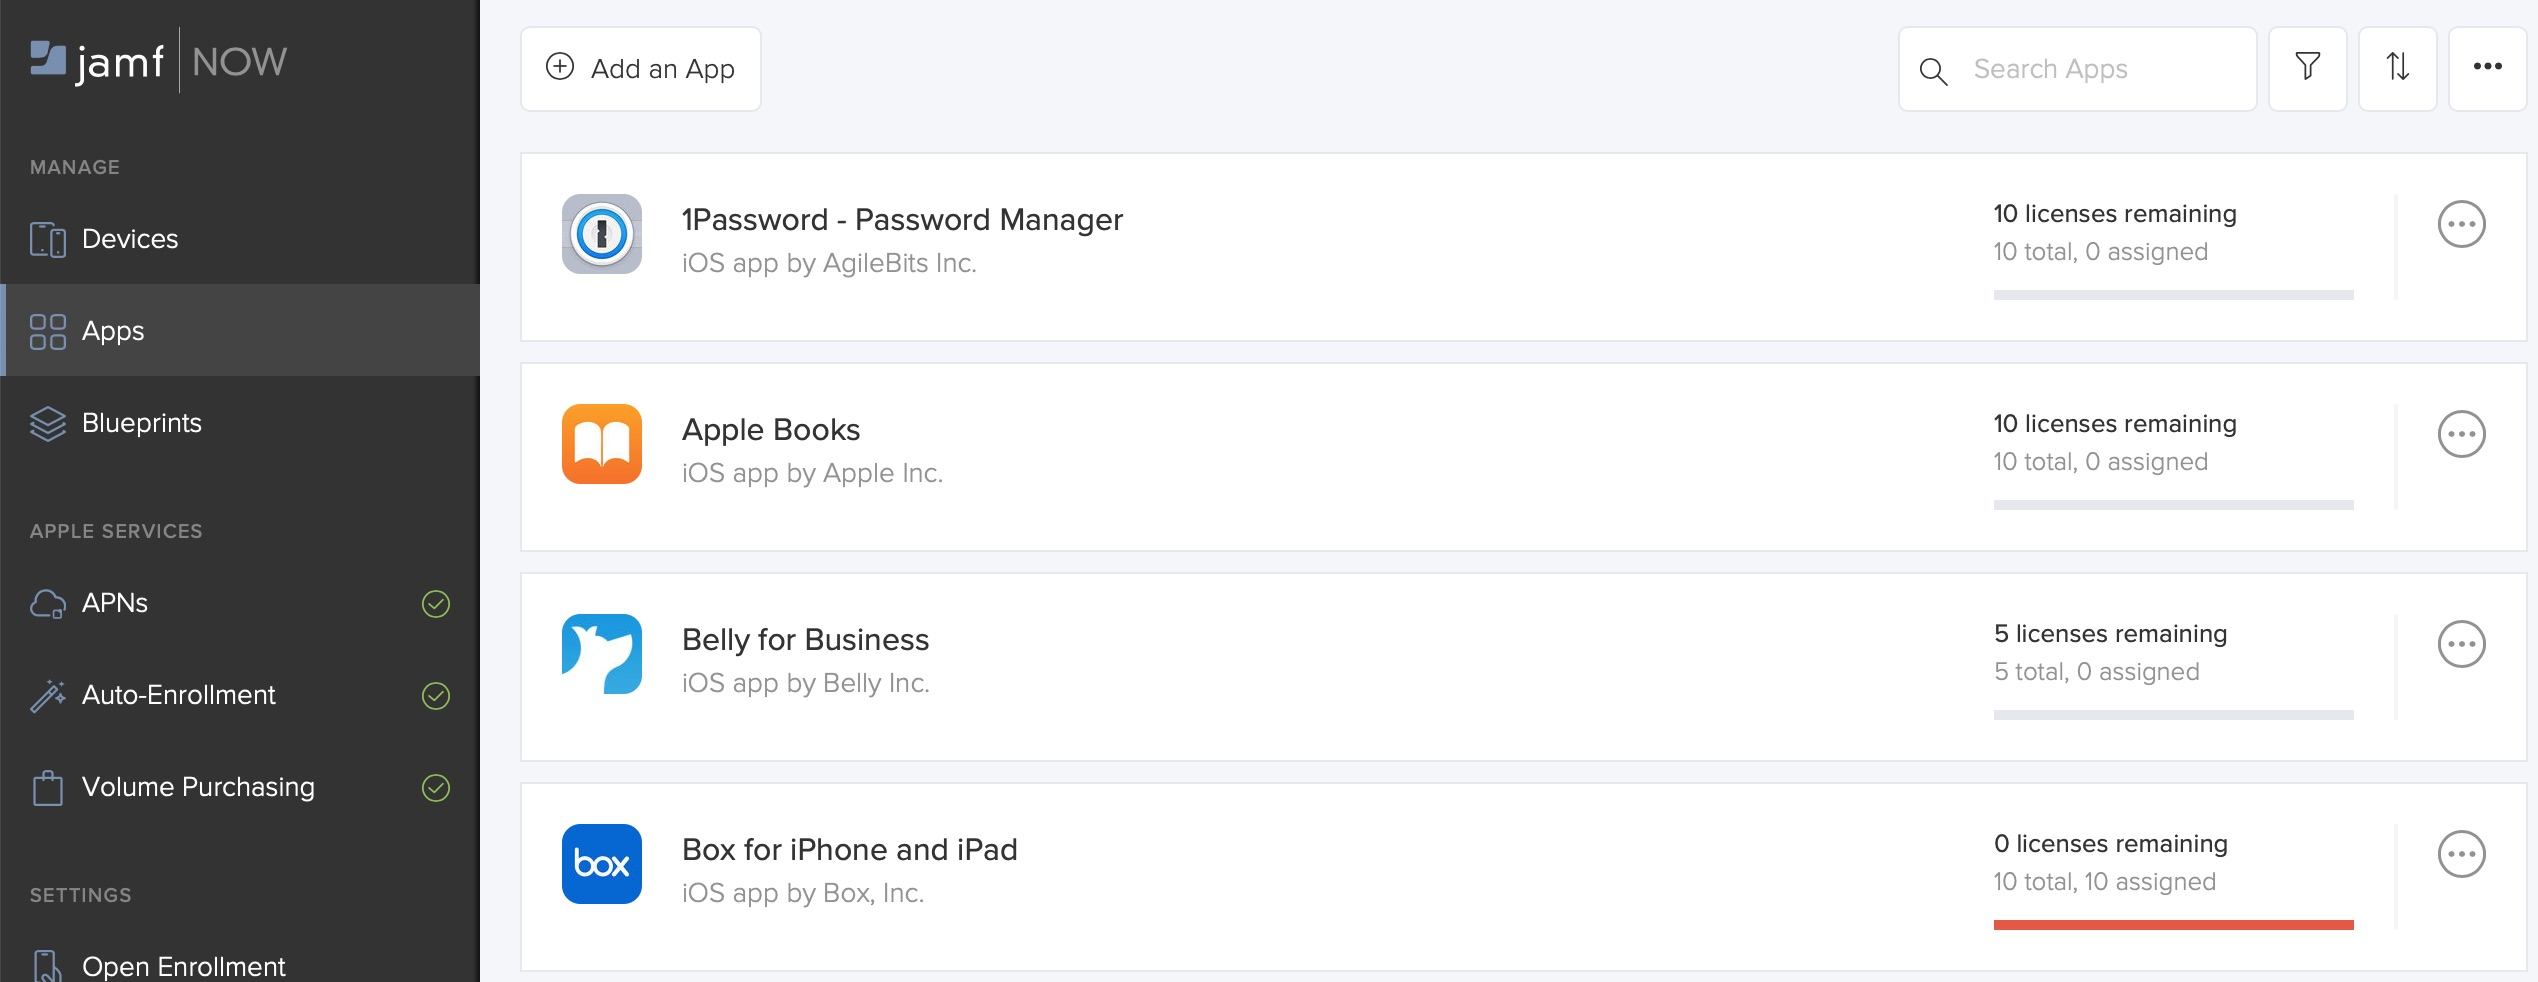 How to use Jamf Now to remotely manage iPhones, iPads, and